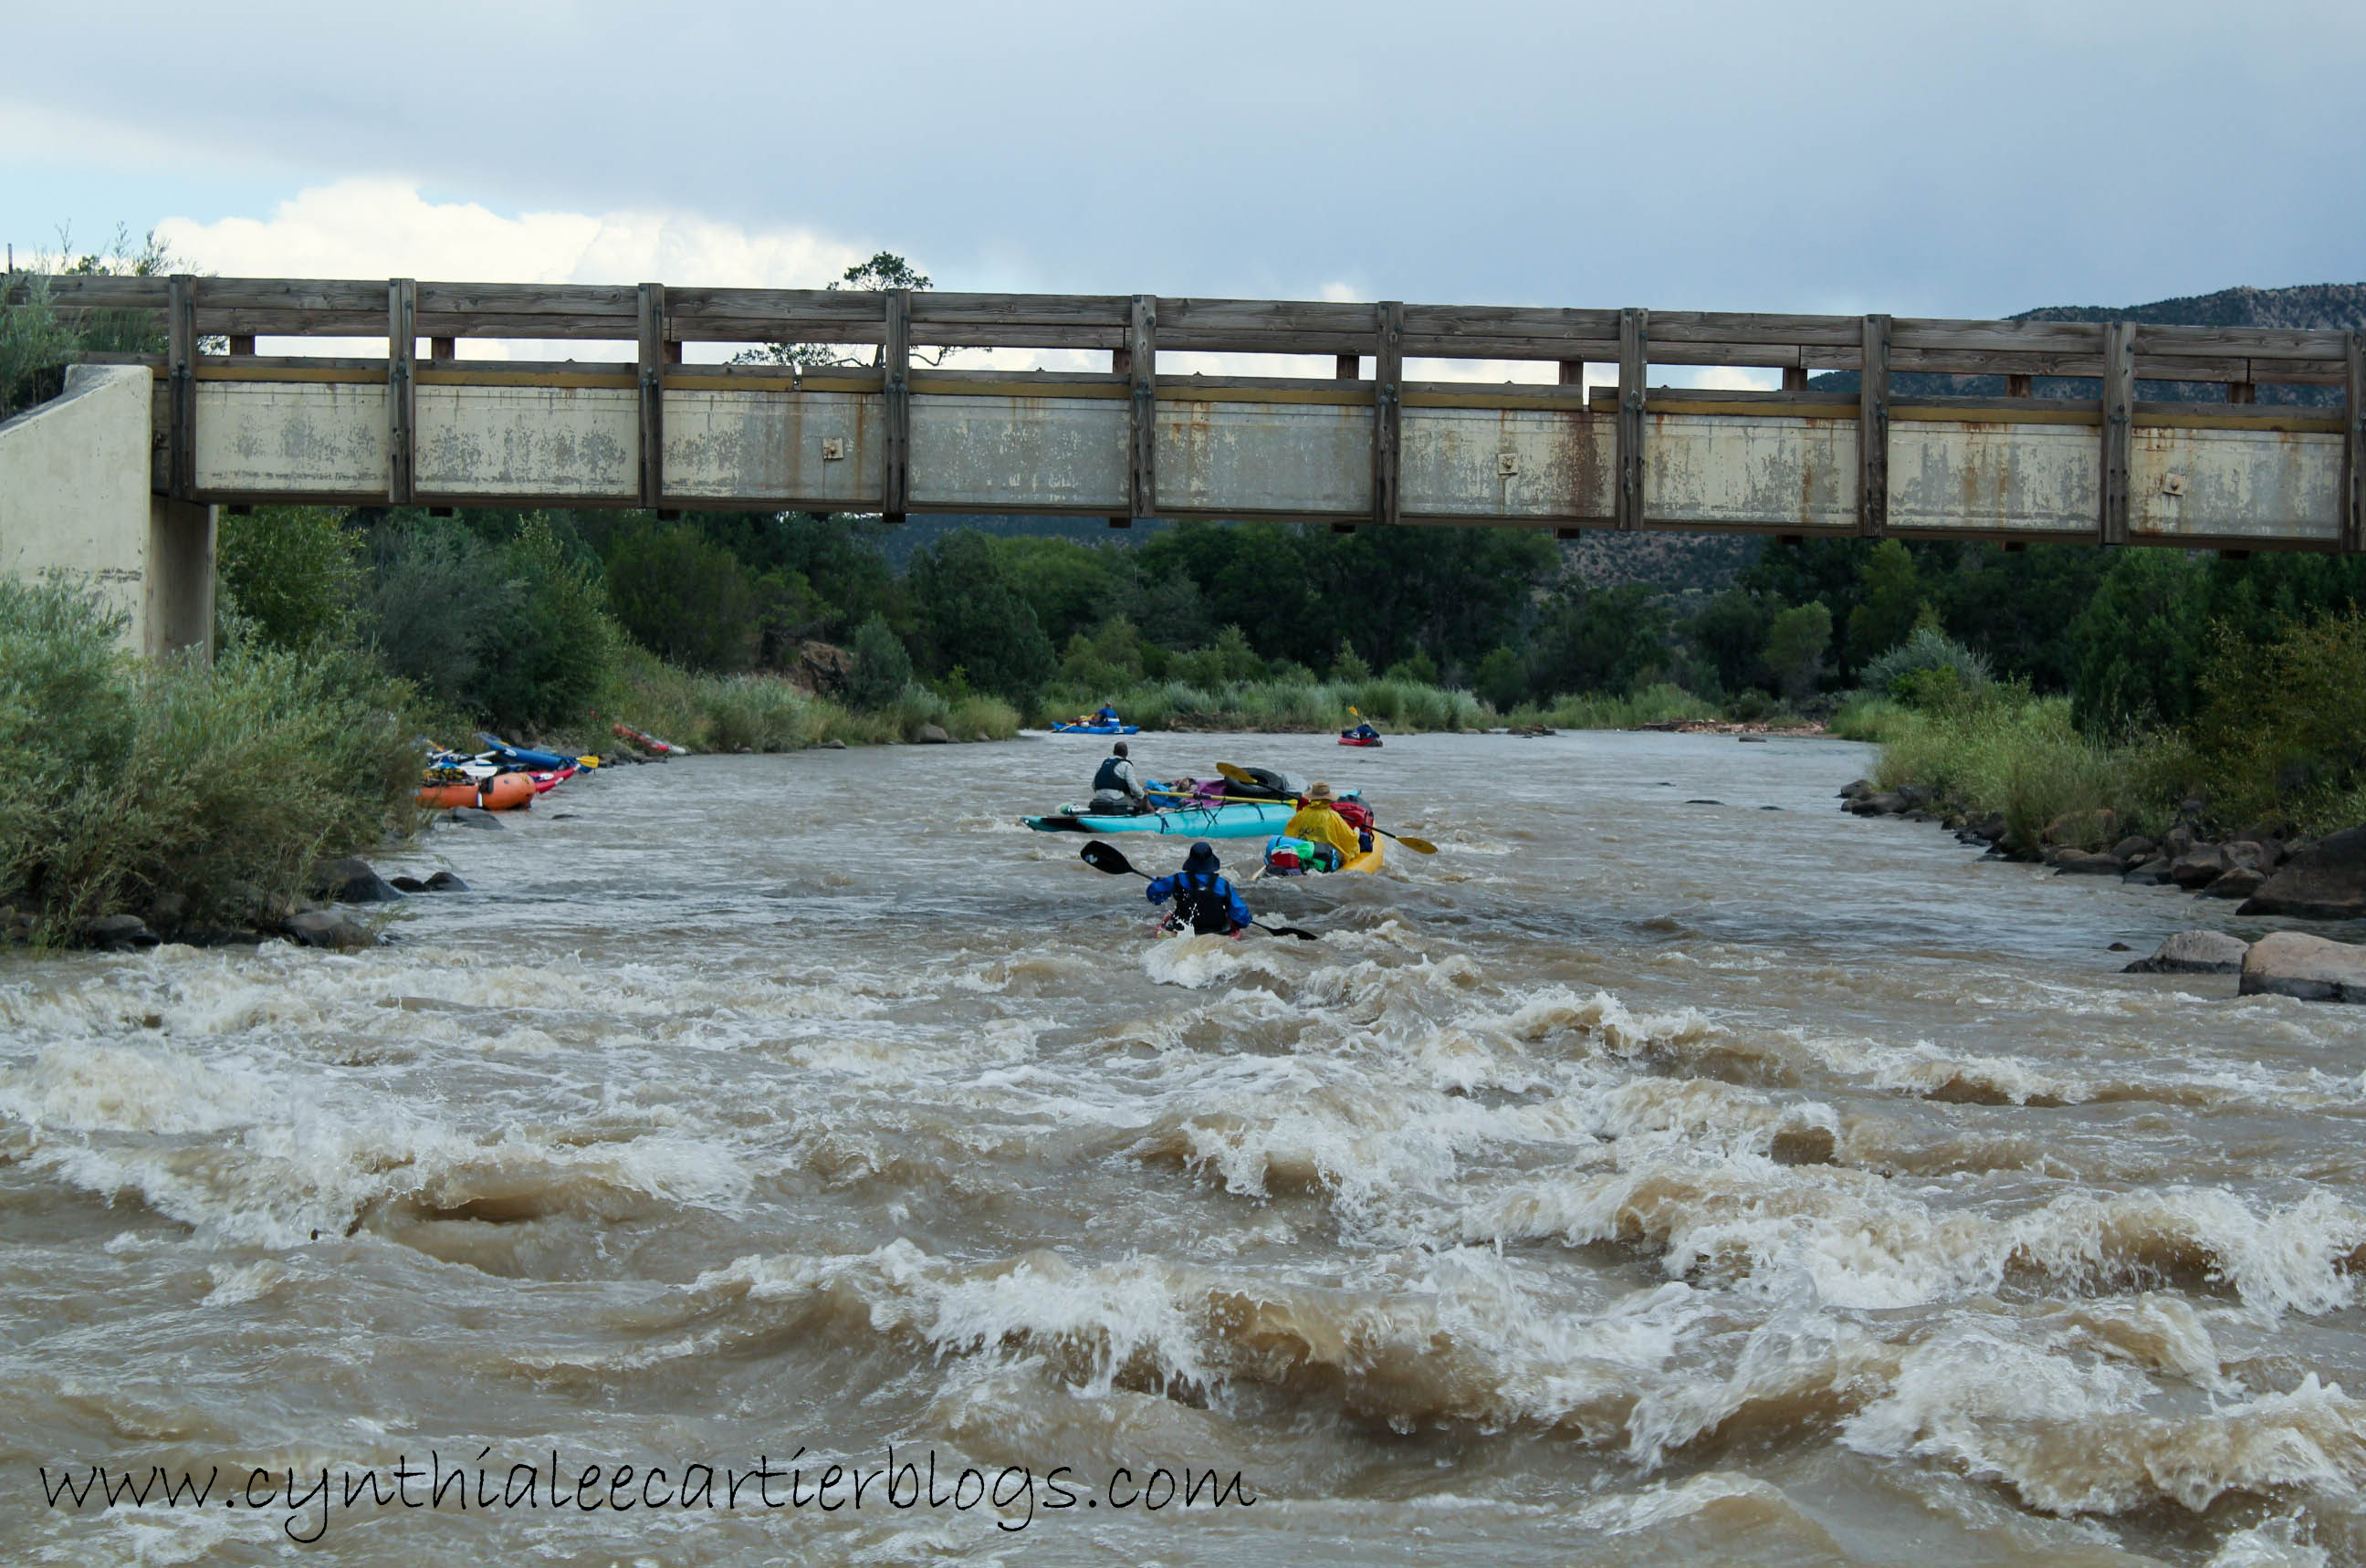 View of Class Three Rapid on the Rio Chama River in New Mexico